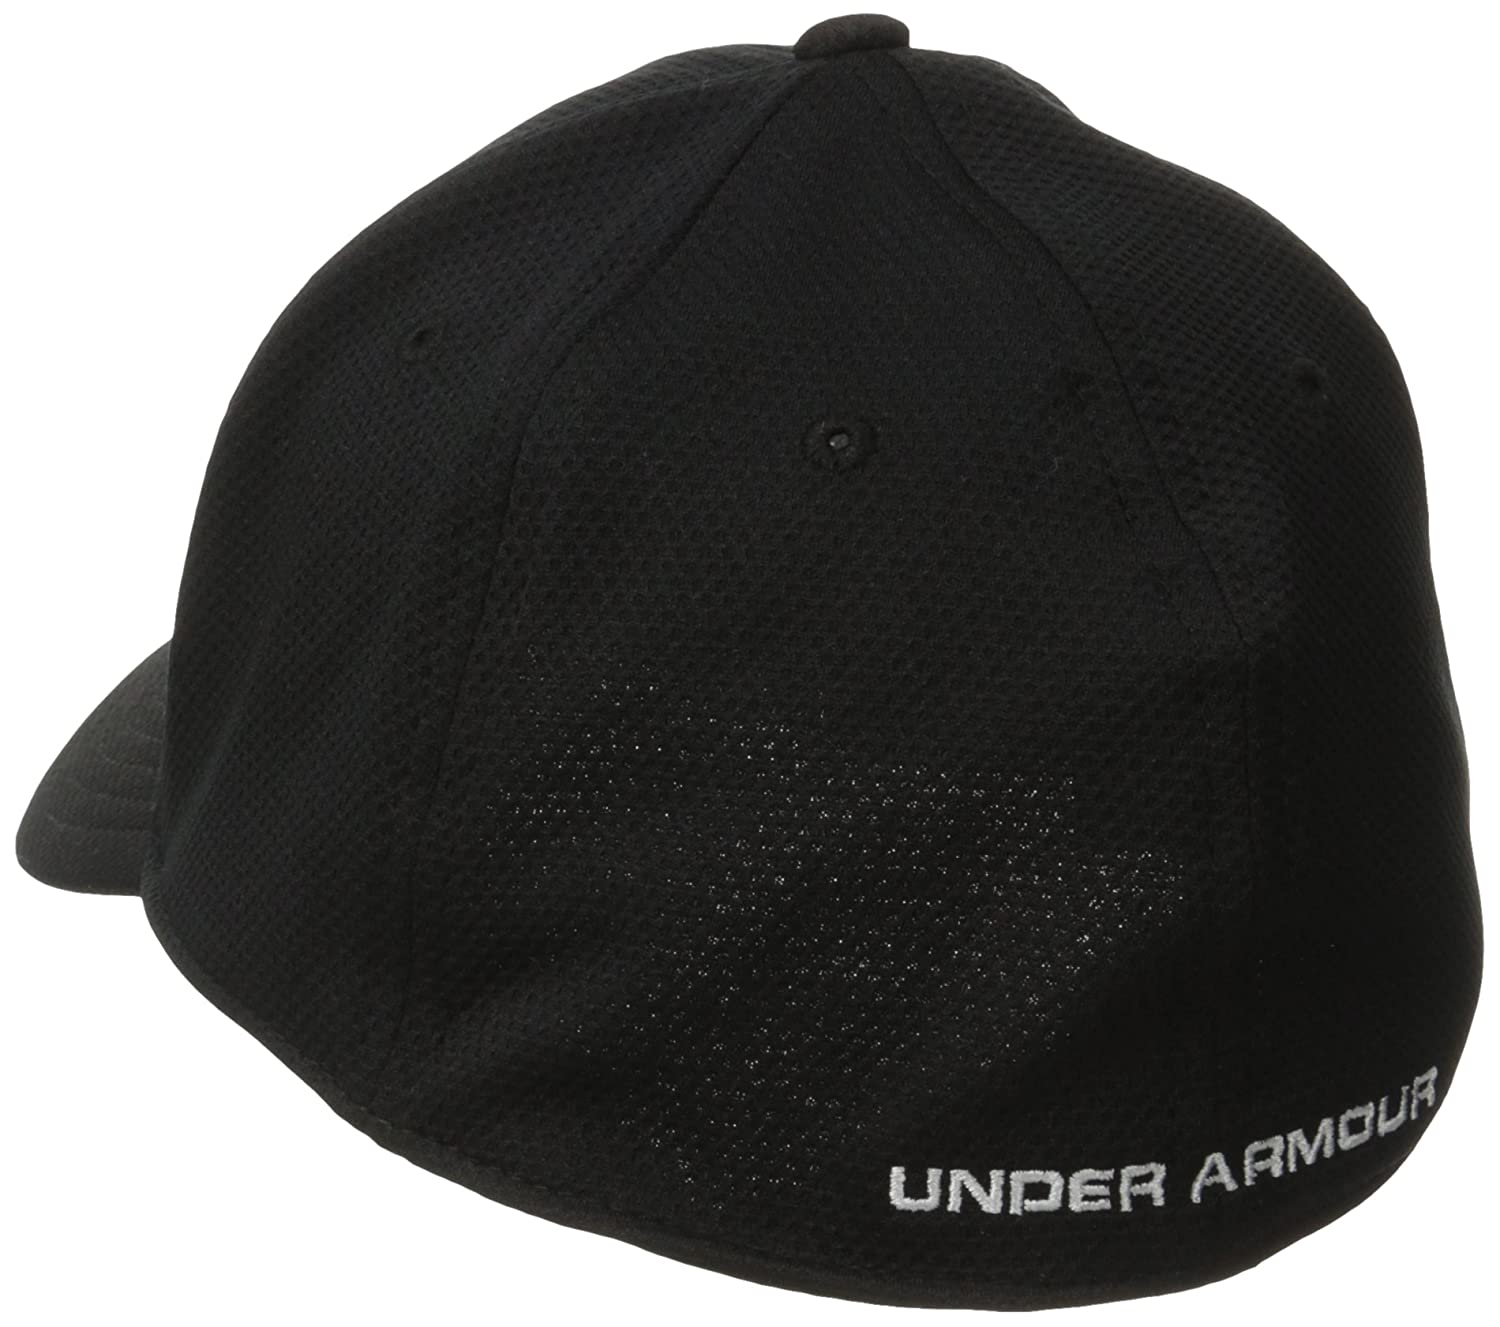 d93542ef0d1 Amazon.com  Under Armour Men s Blitzing II Stretch Fit Cap  UNDER ARMOUR   Sports   Outdoors